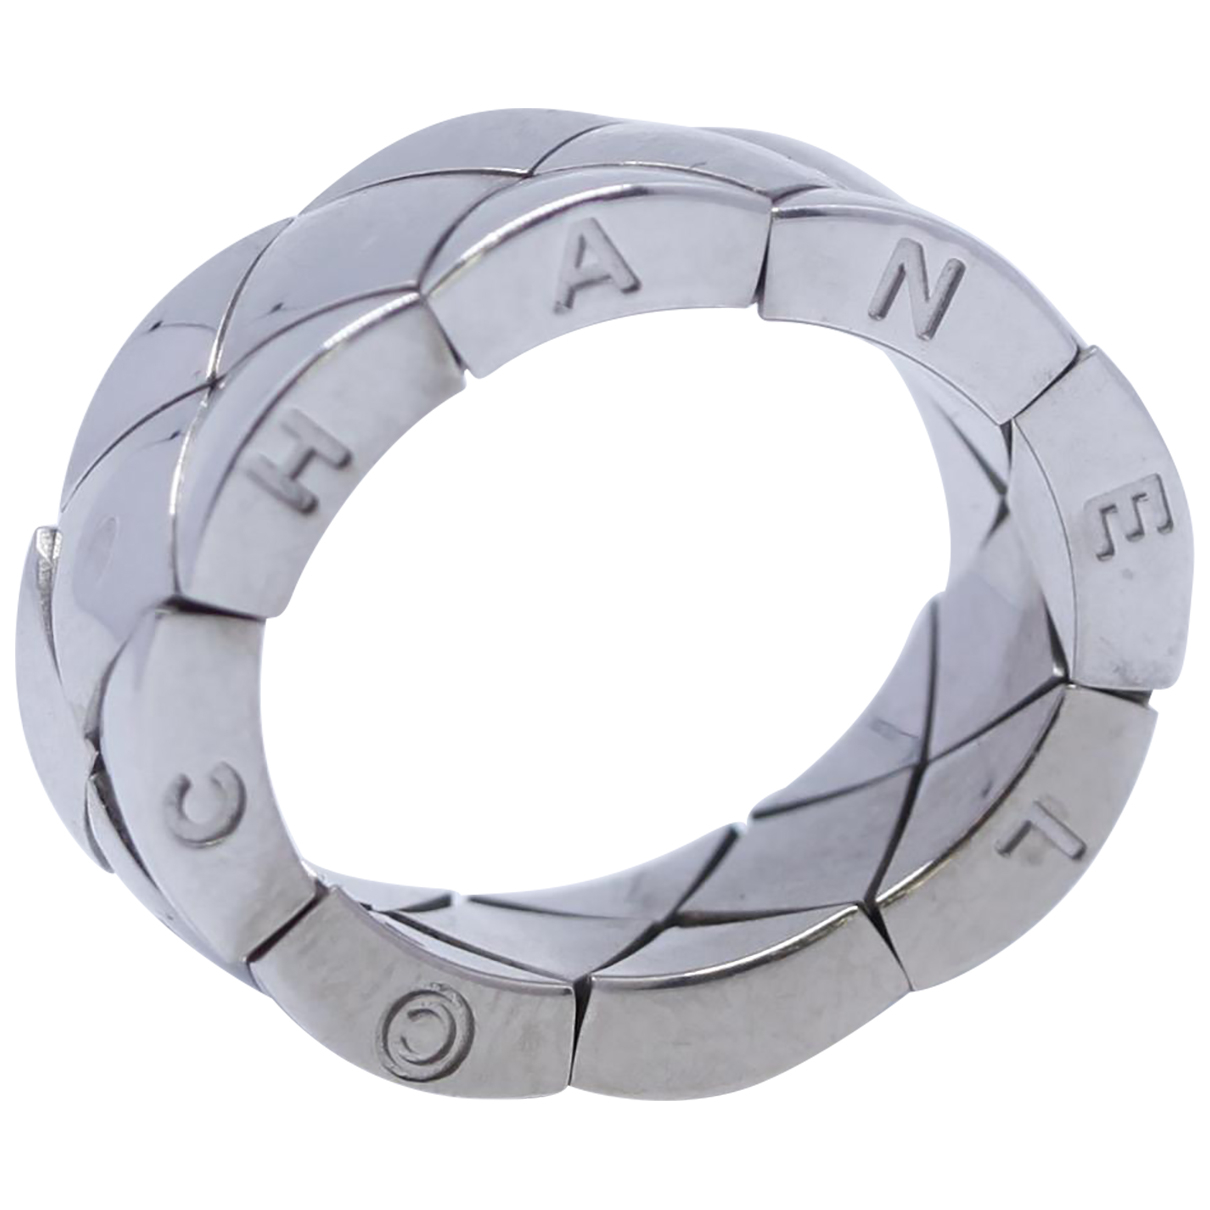 Chanel Matelasse Ring in  Silber Weissgold